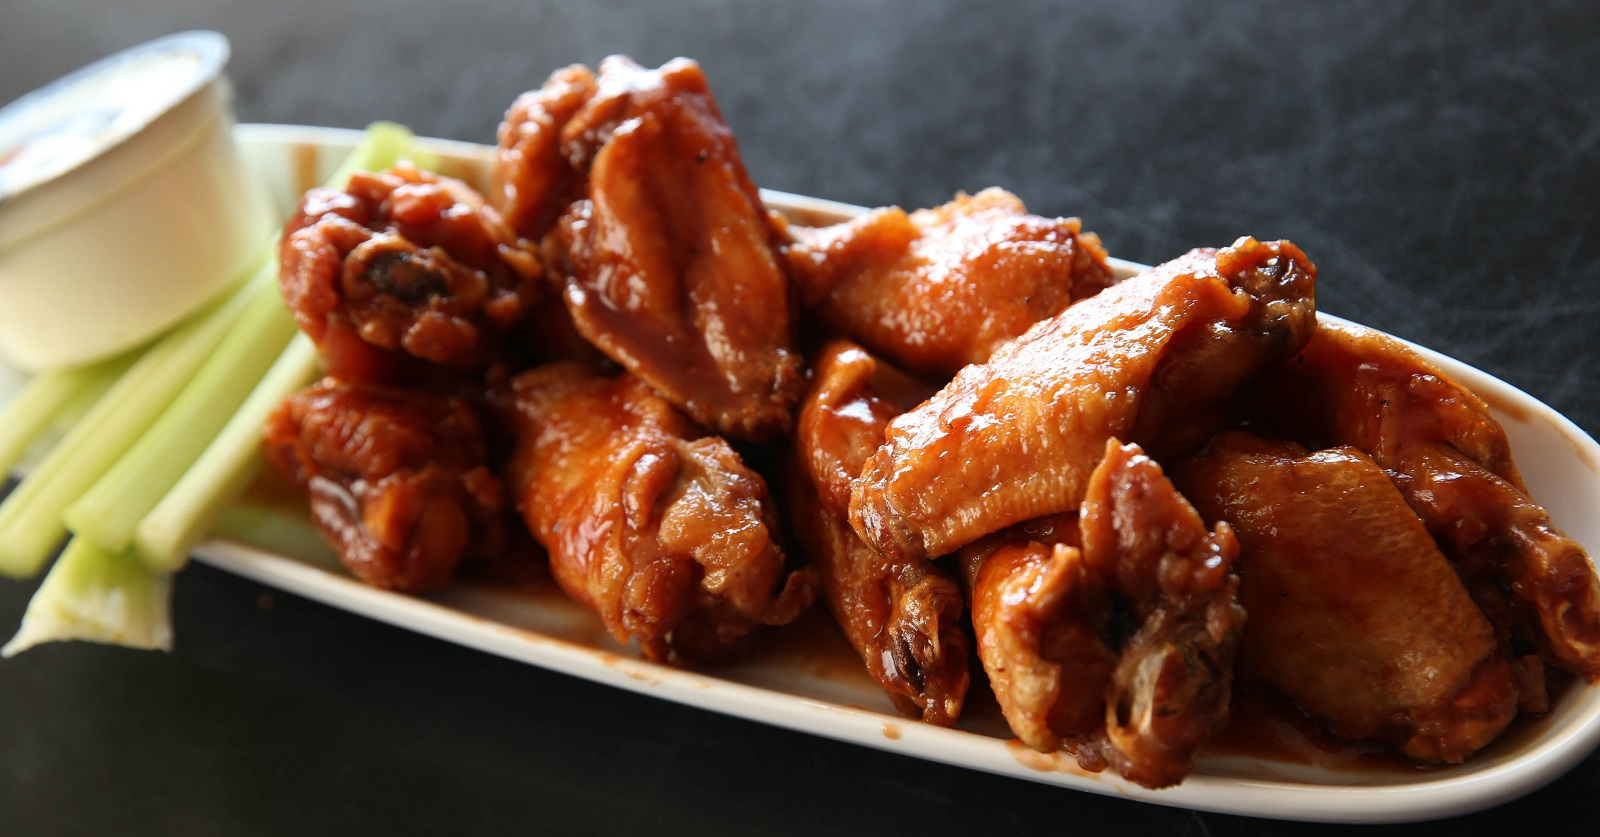 My Tomato Pie's BBQ chicken wings with a side of celery and bleu cheese.(Sharon Cantillon/Buffalo News)